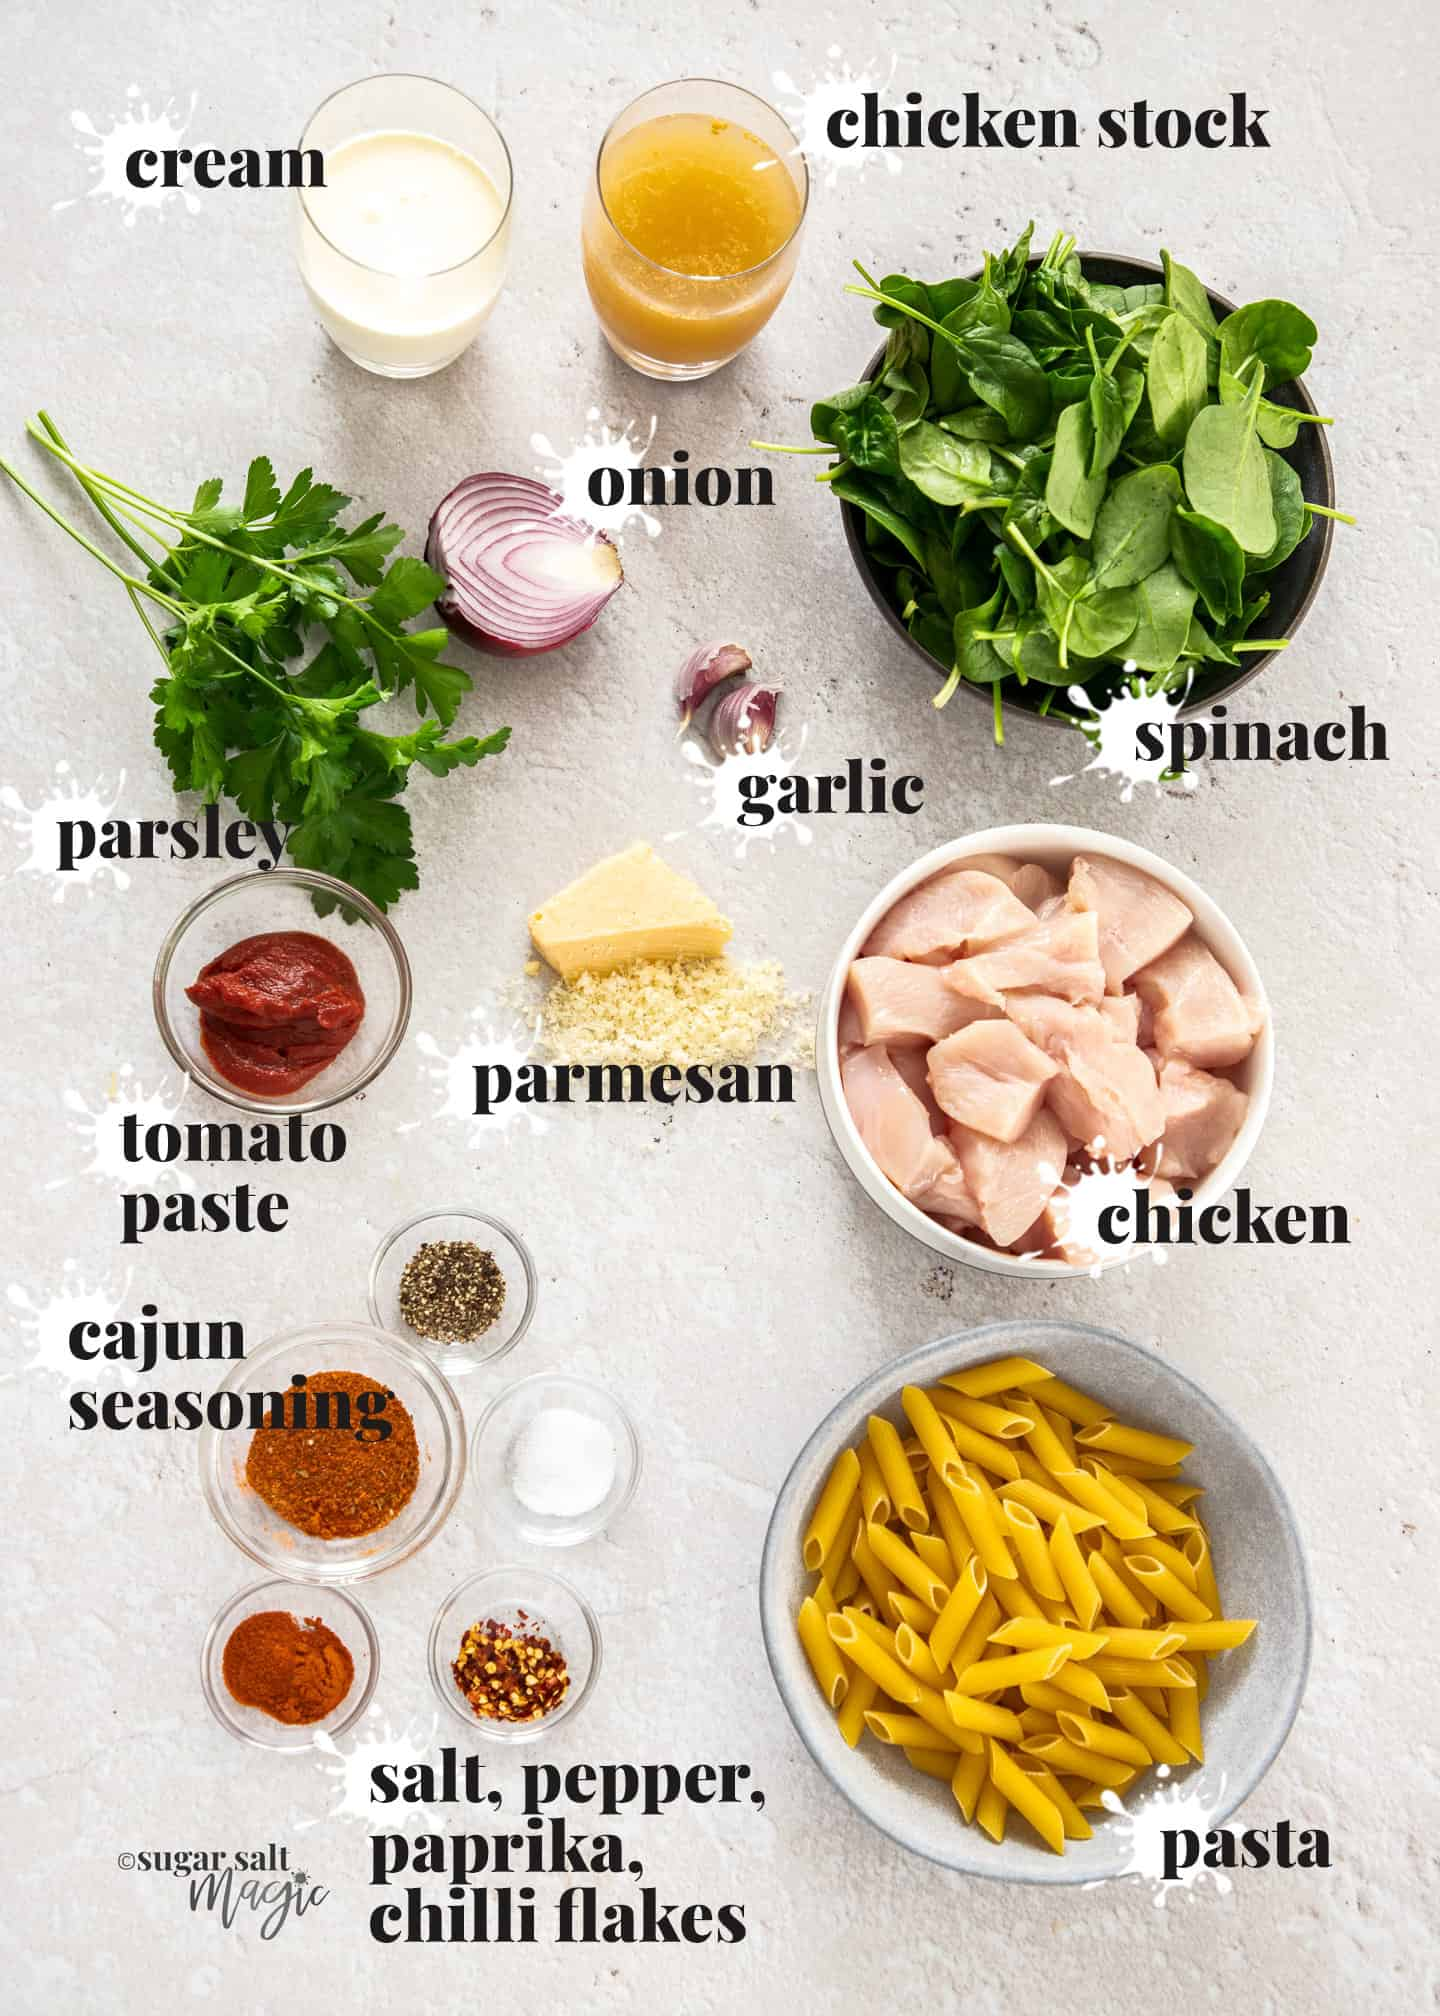 Ingredients for spicy chicken pasta on a stone benchtop.